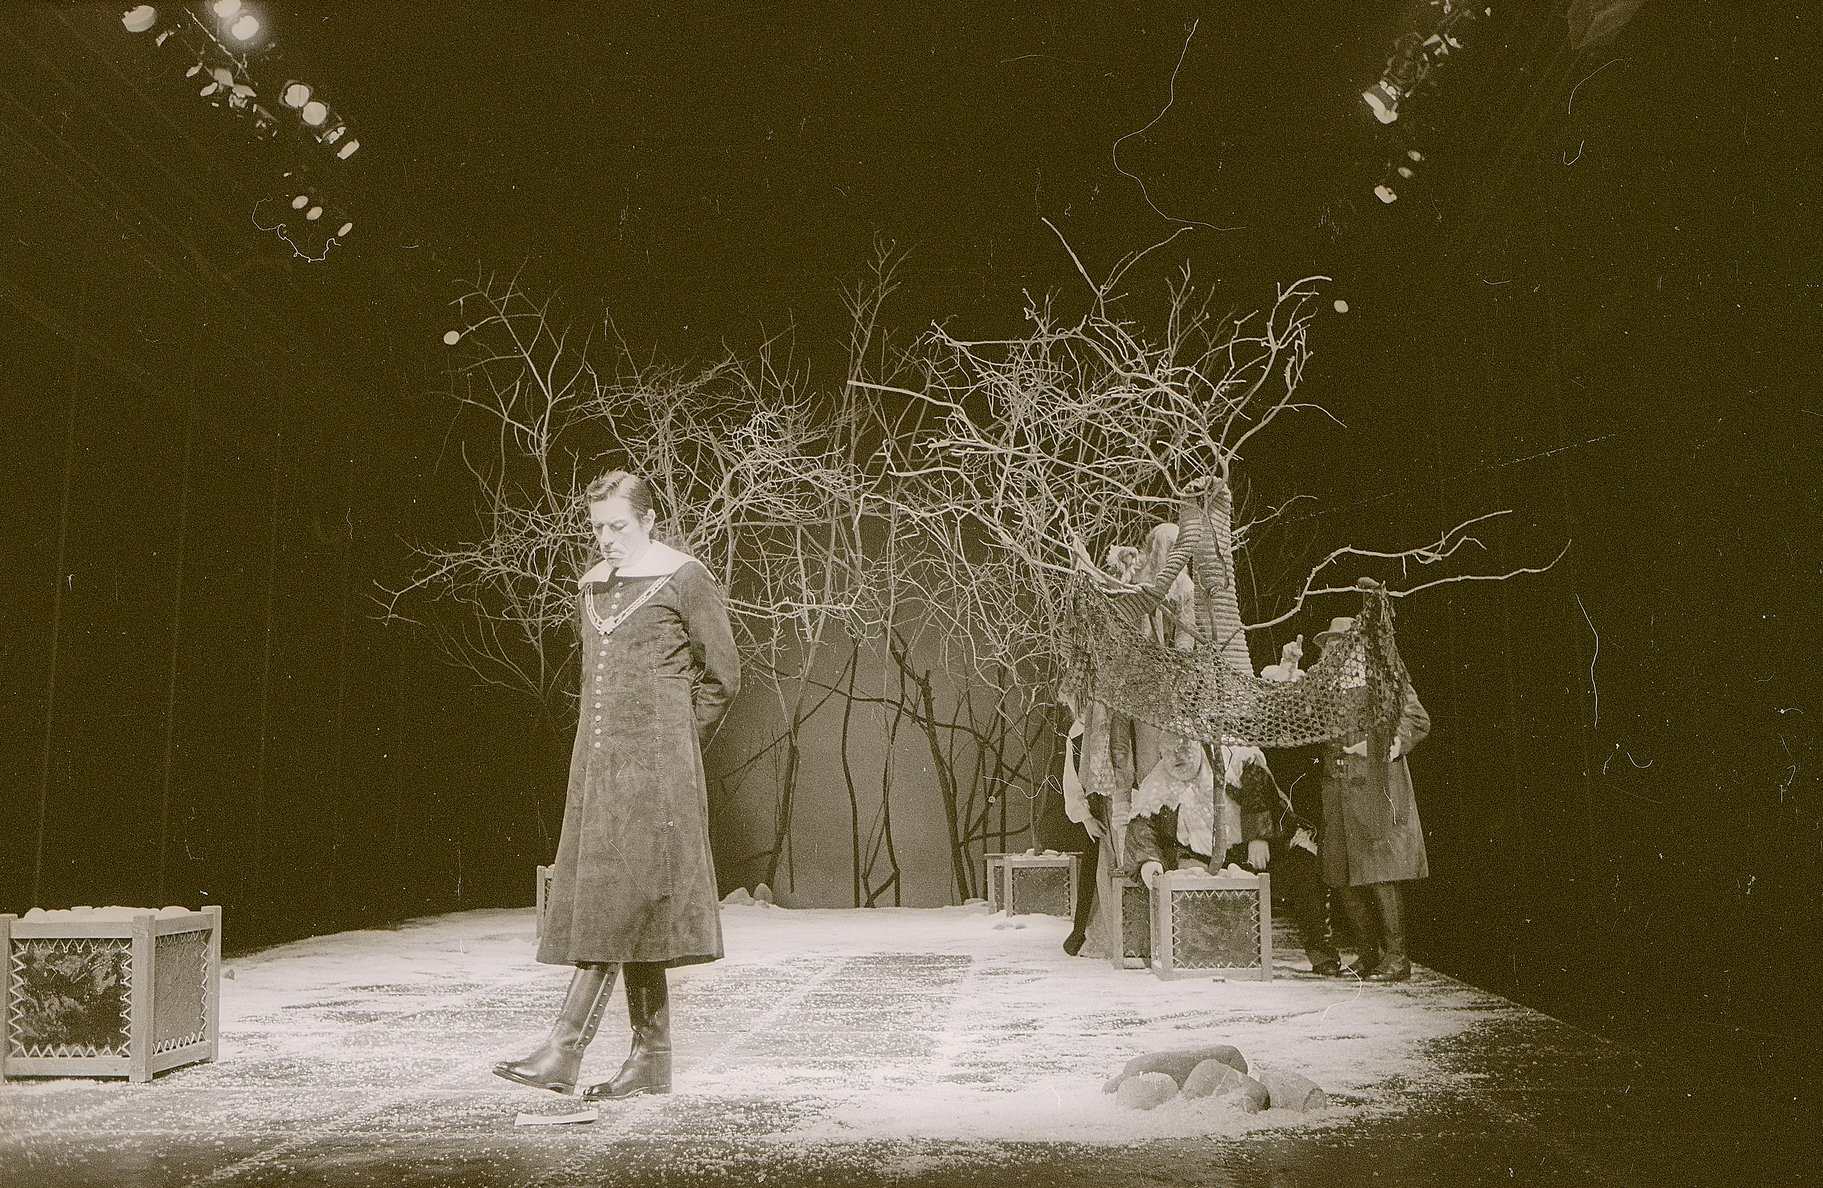 Malvolio paces up and down wearing a long plain coat and is watched by Sir Toby, Sir Andrew and Fabian who are hiding in some branches at the back of the stage in the 1979 production of Twelfth Night.